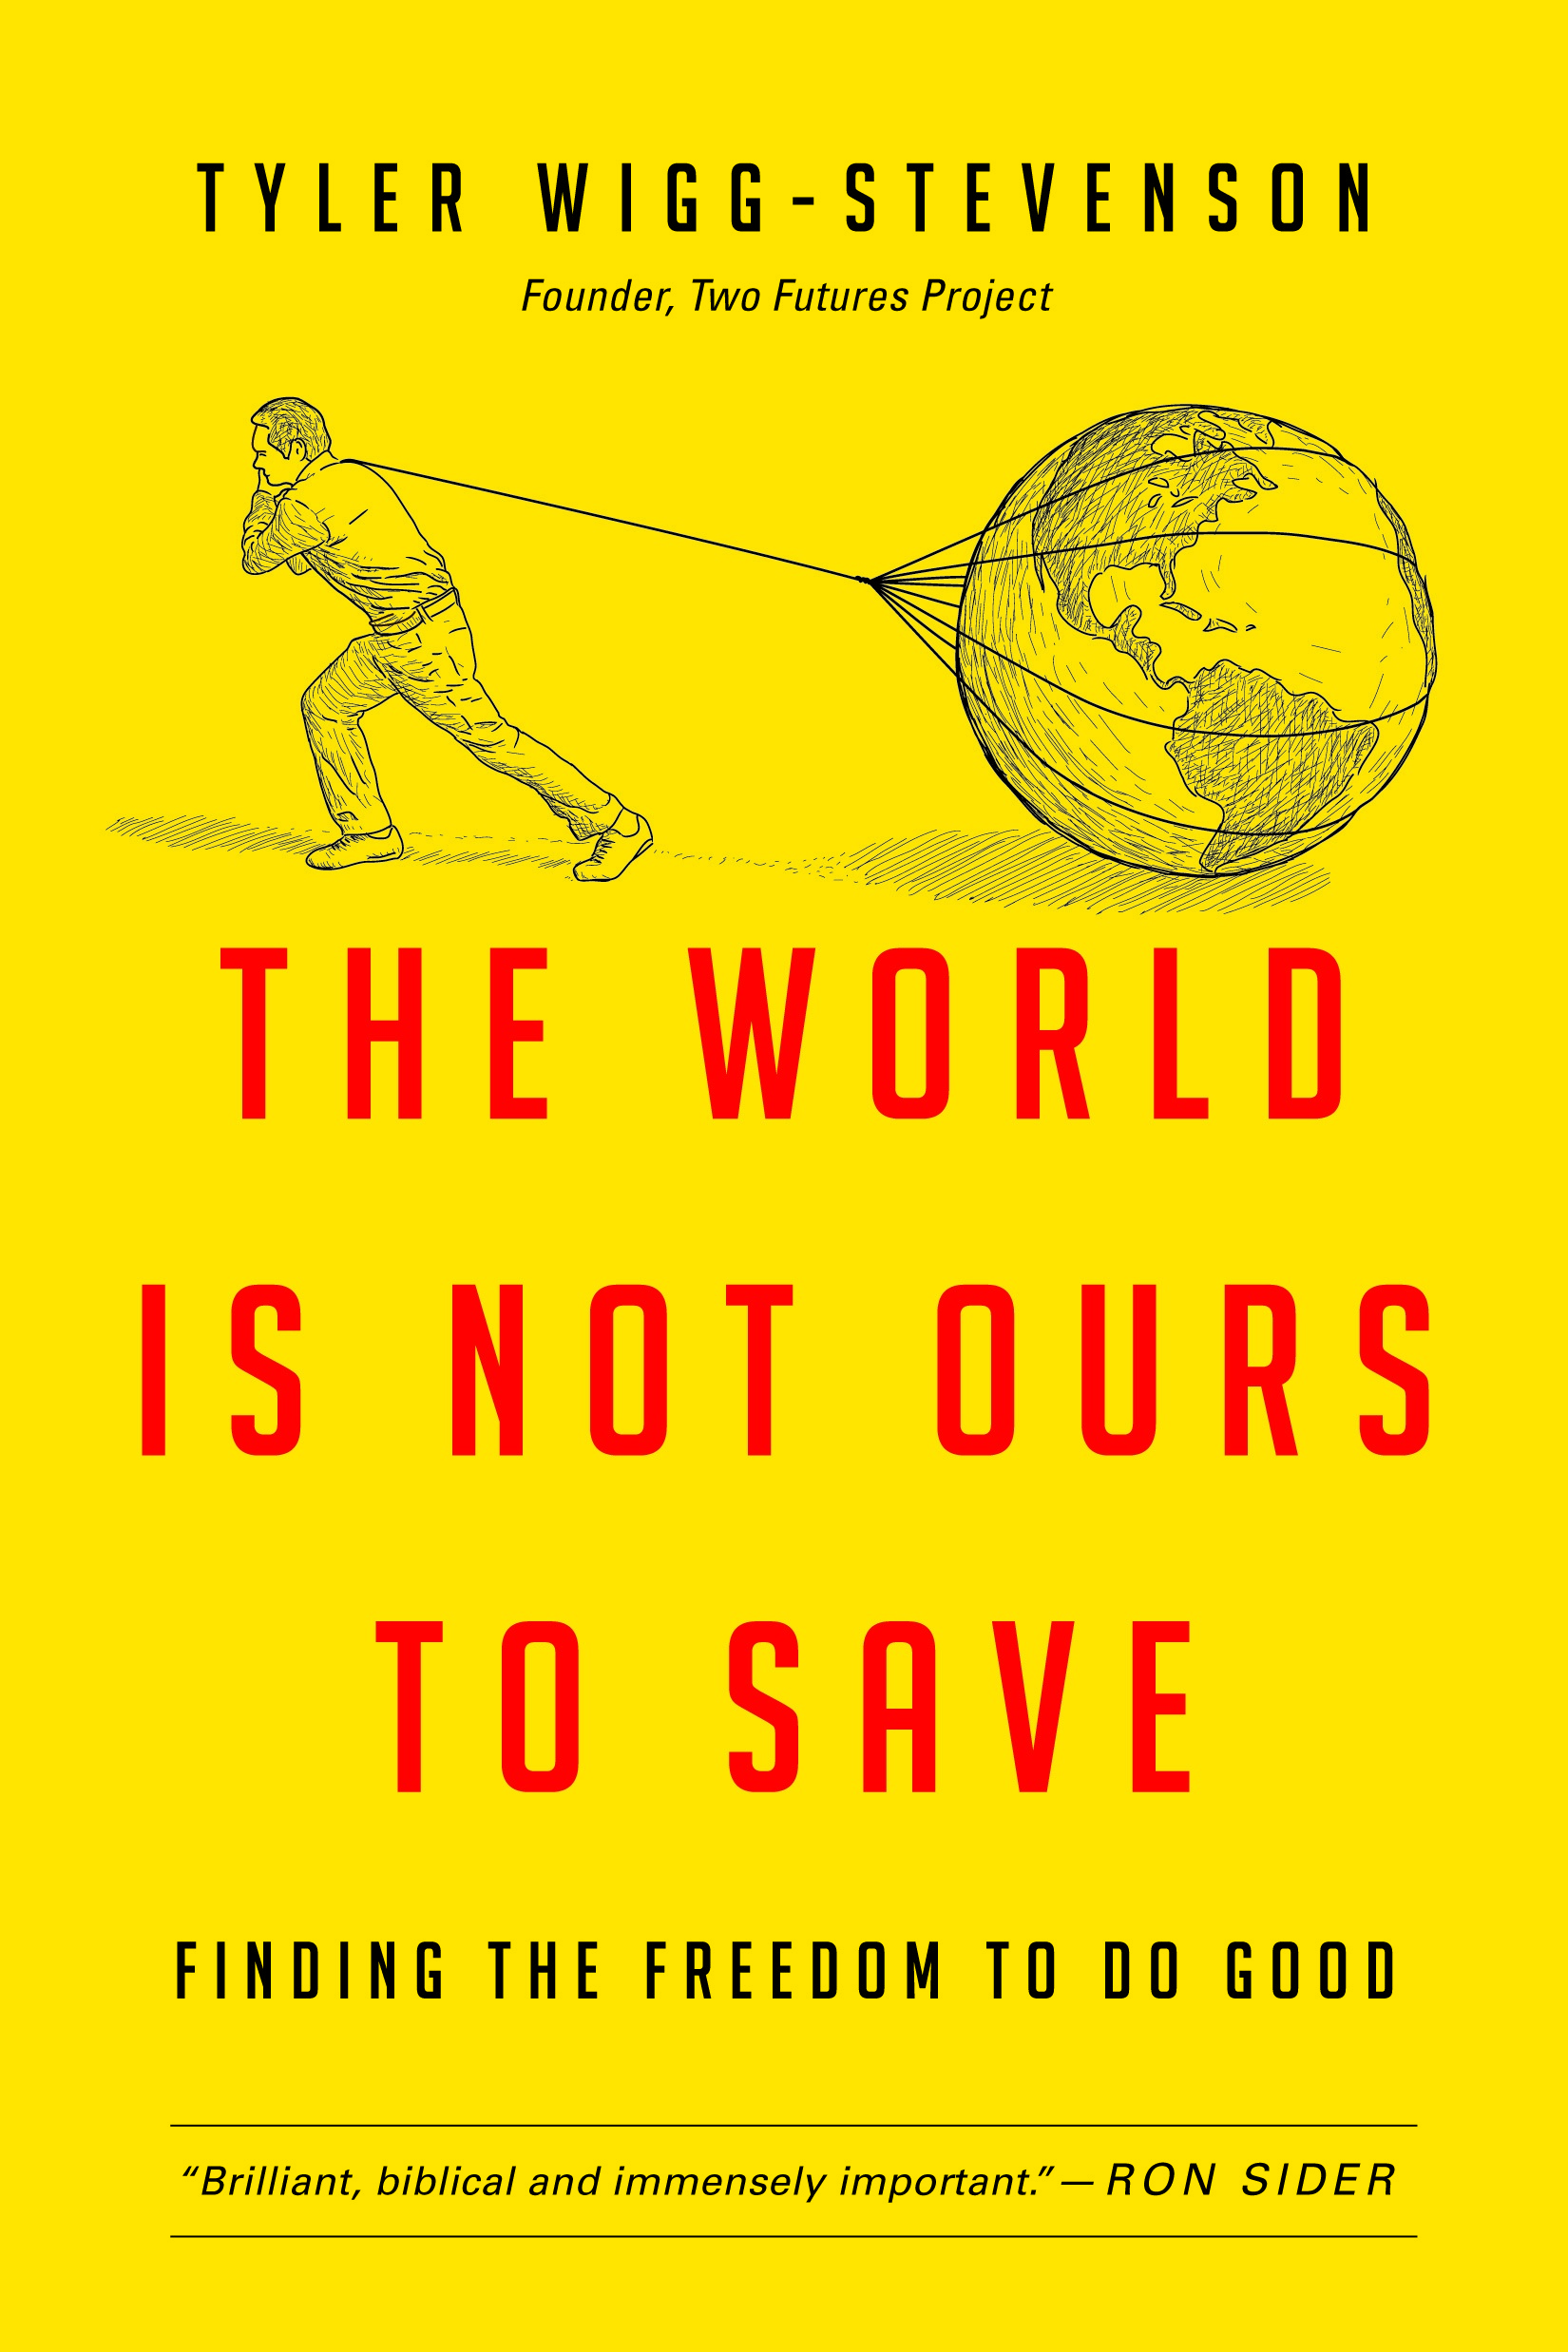 Mission (part 3): The World Is Not Yours To Save